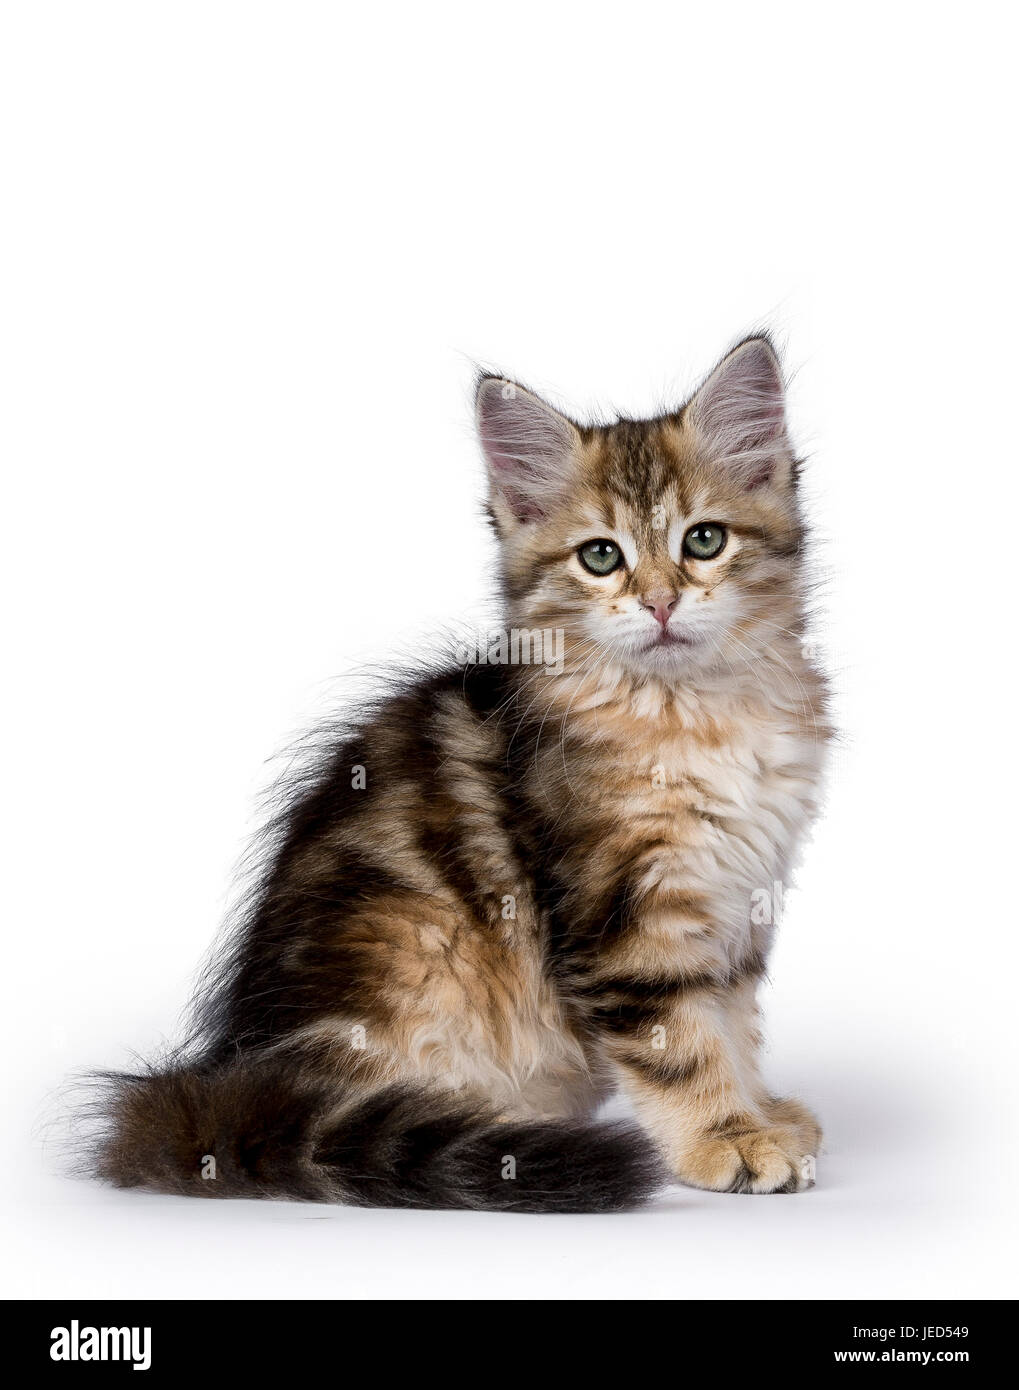 Black tabby Siberian Forest cat / kitten sitting side ways isolated on white background facing camera - Stock Image